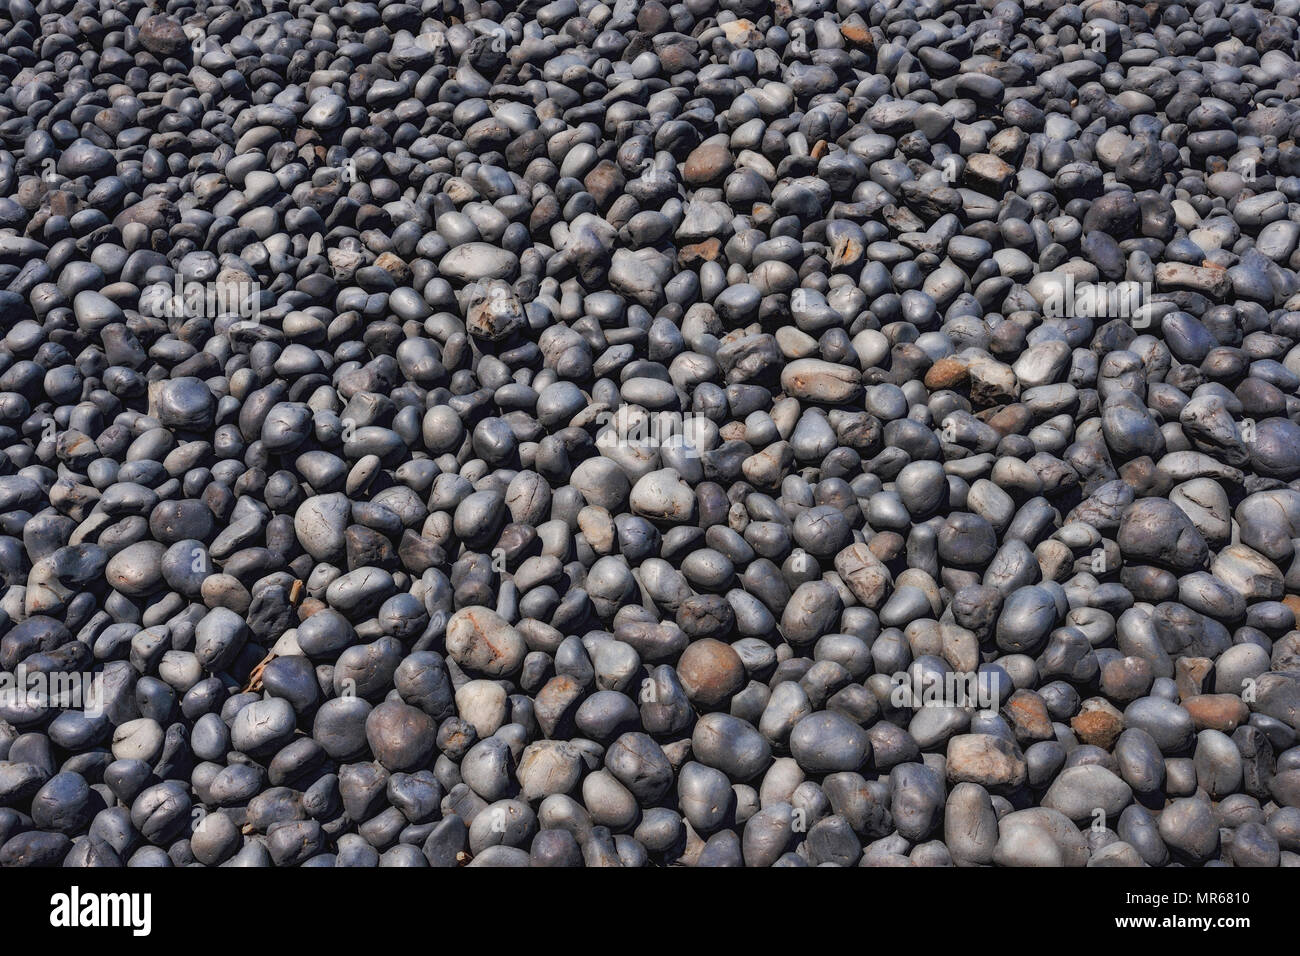 Clsoeup of cobble stones on Cobble Beach in Newport, Oregon.  The dark stones formed from lava being eroded over millions of years by the sea. - Stock Image